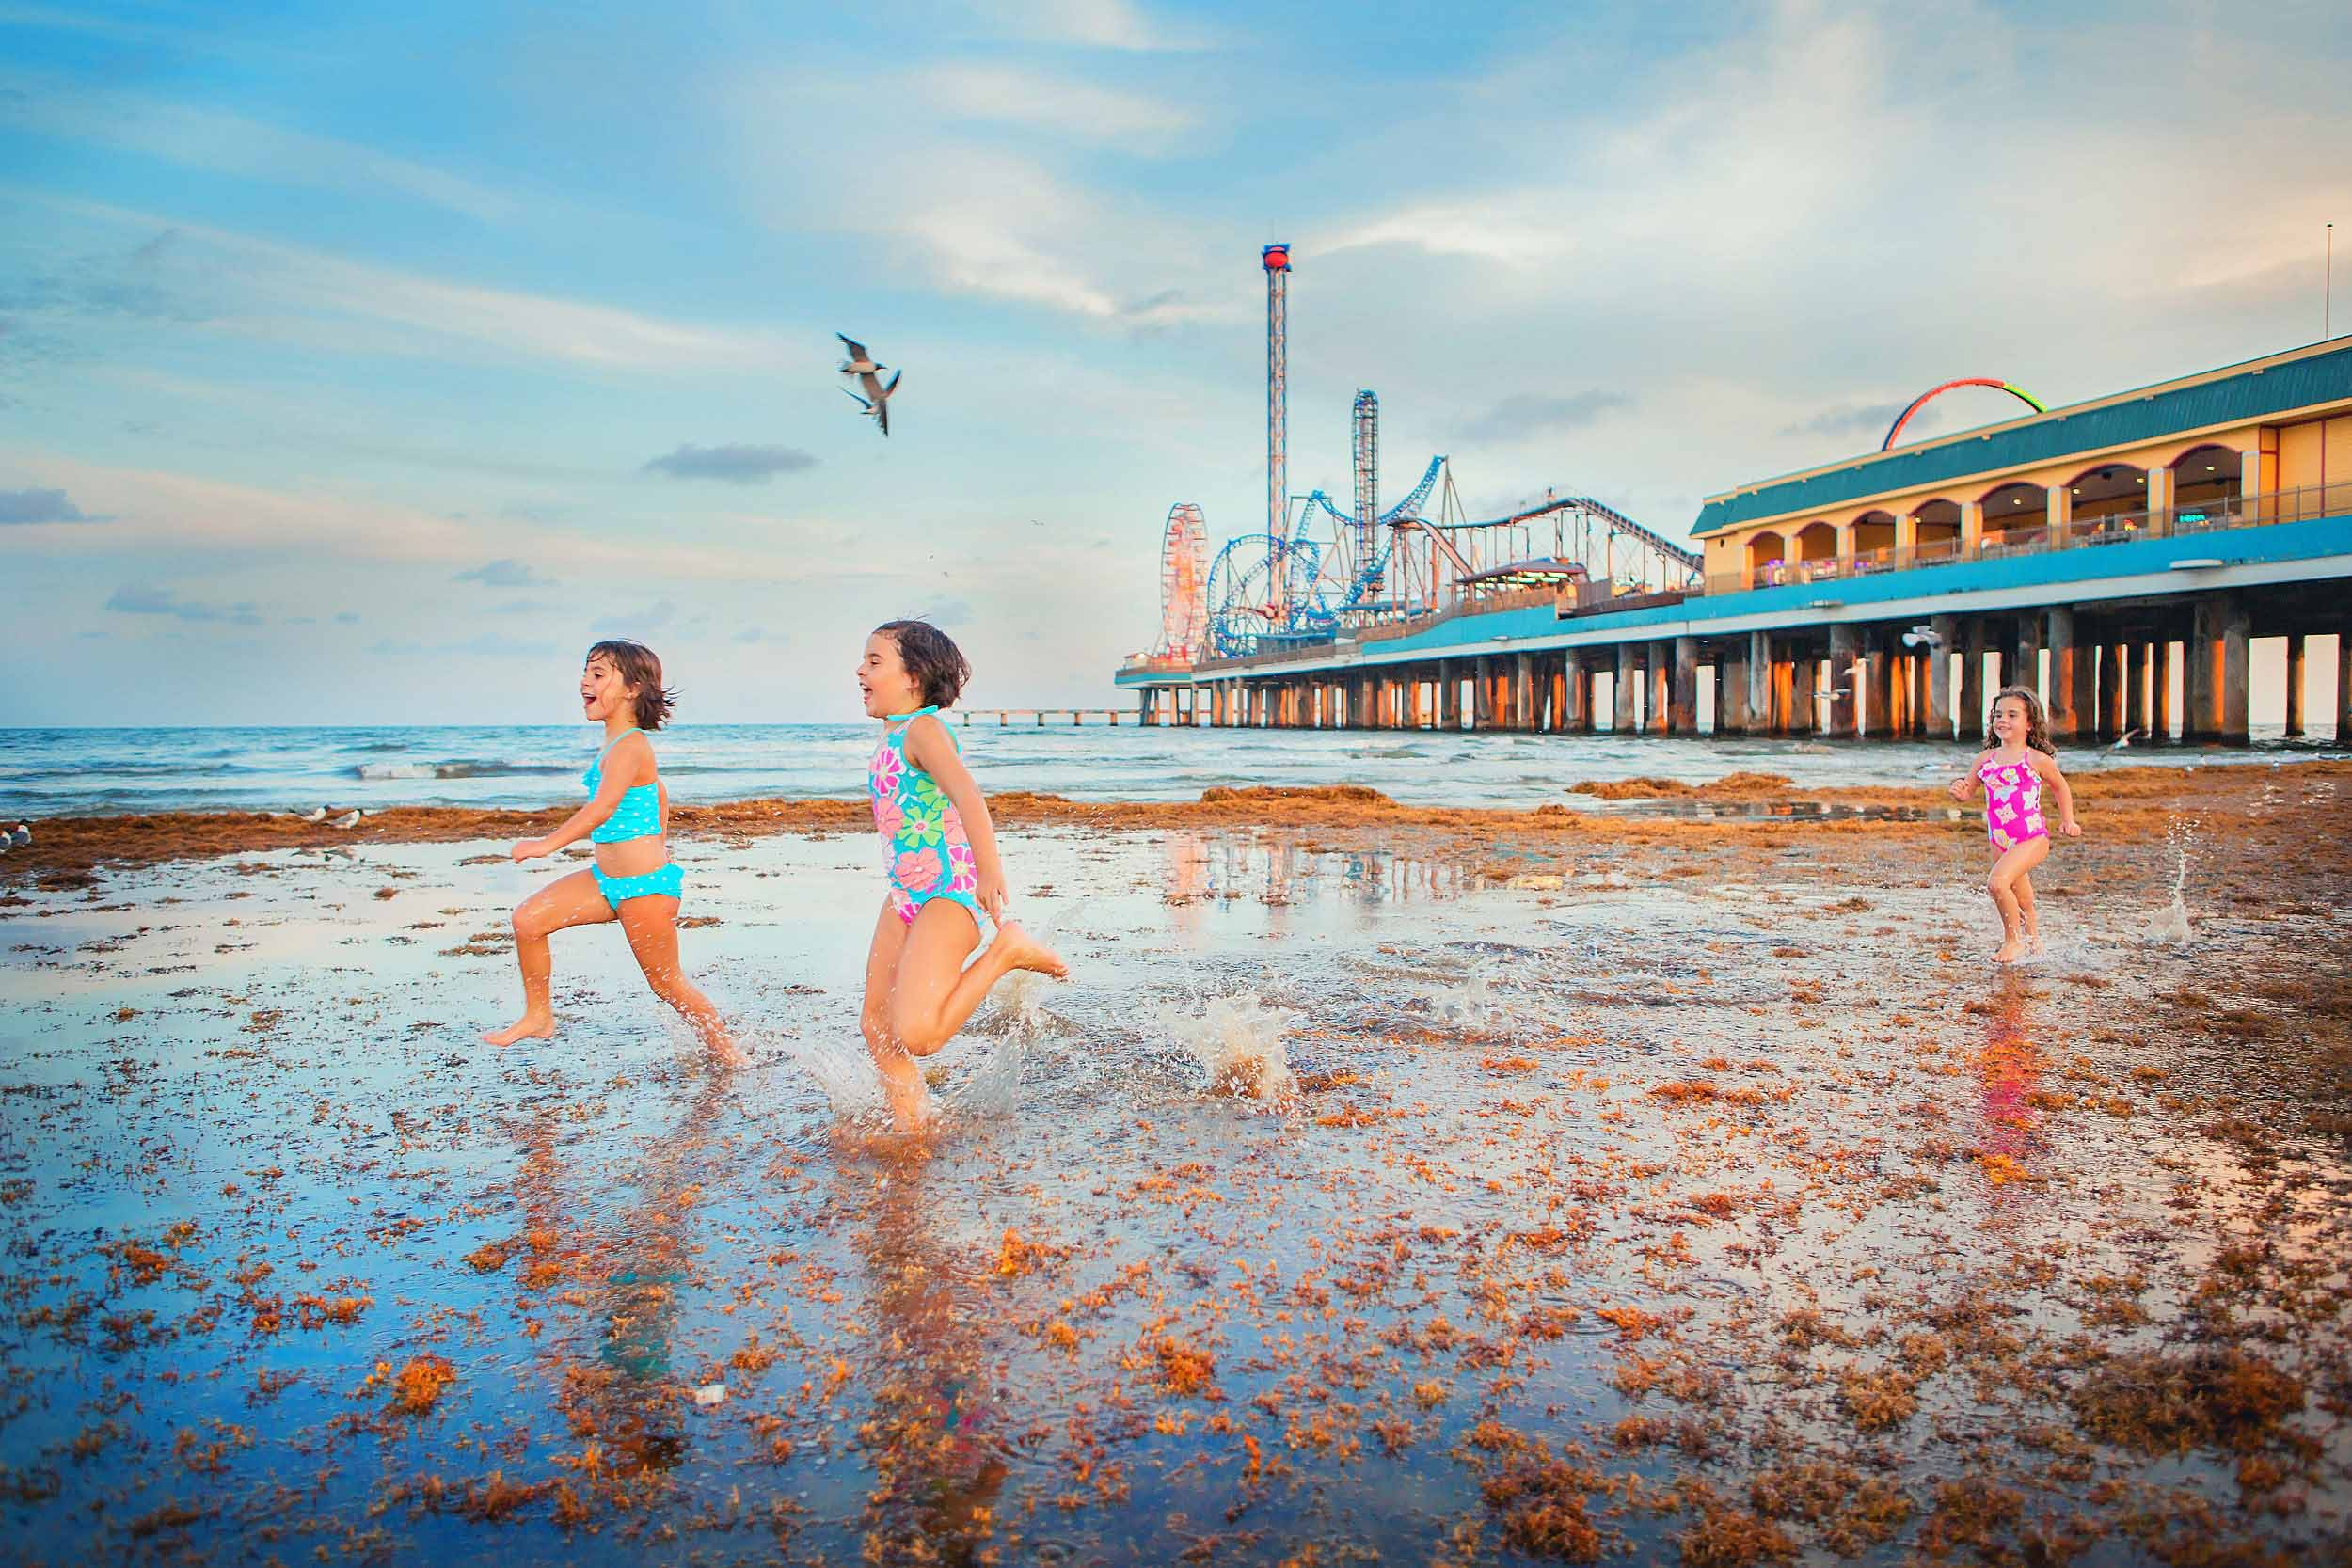 Young girls running on beach in Galveston Texas by Pleasure Pier by family photographer spryART photography